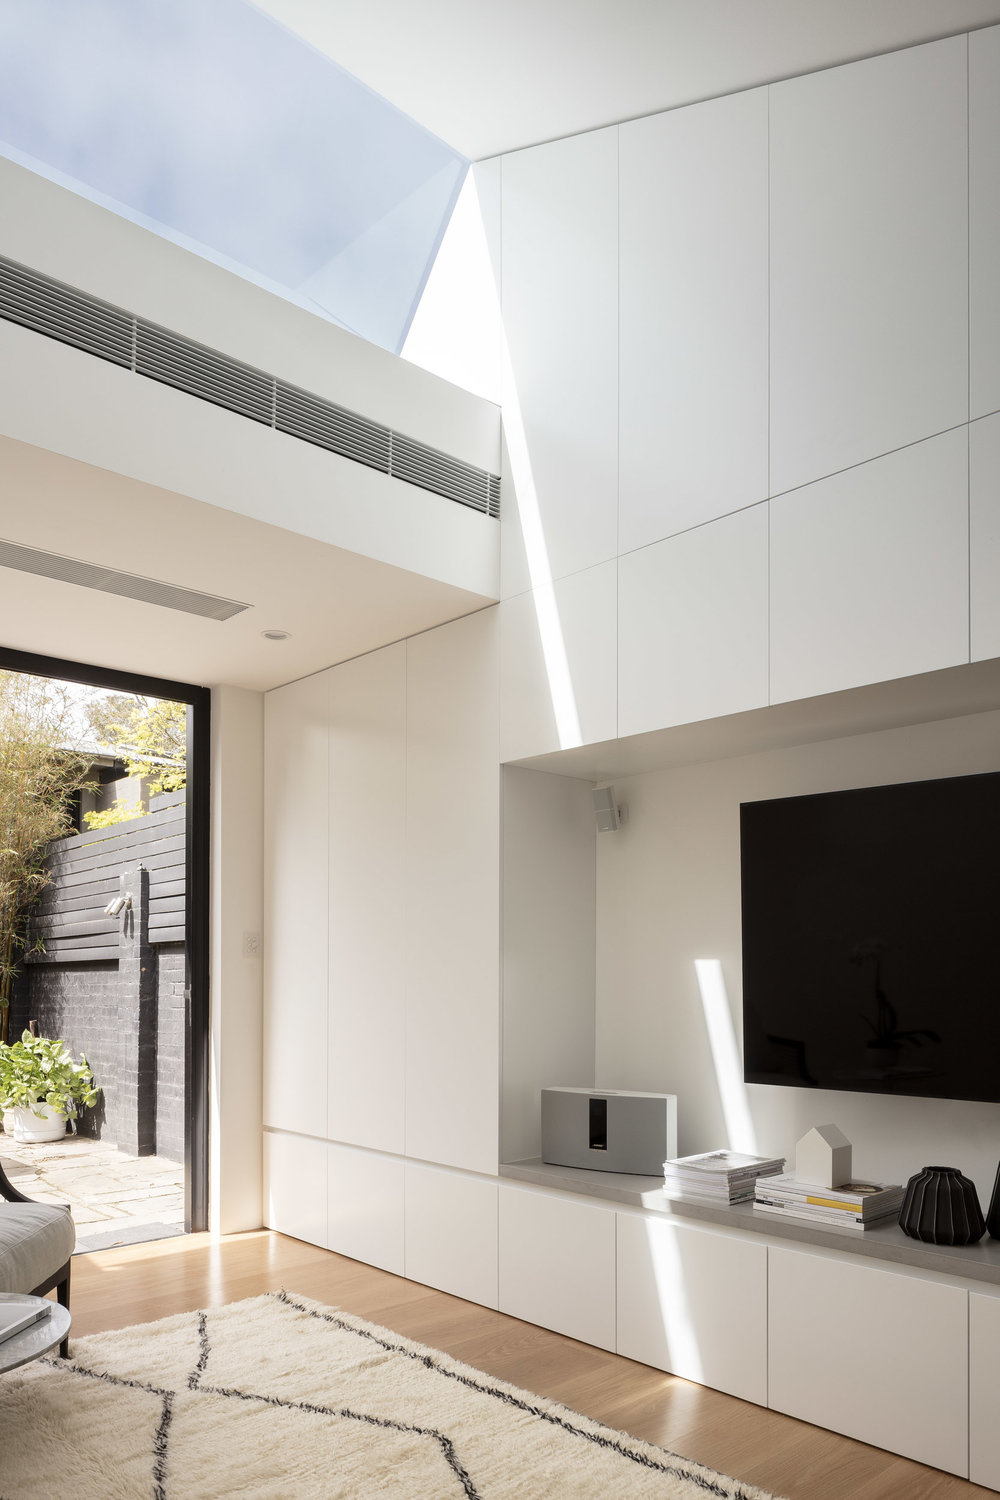 Skylight House by Josephine Hurley Architects